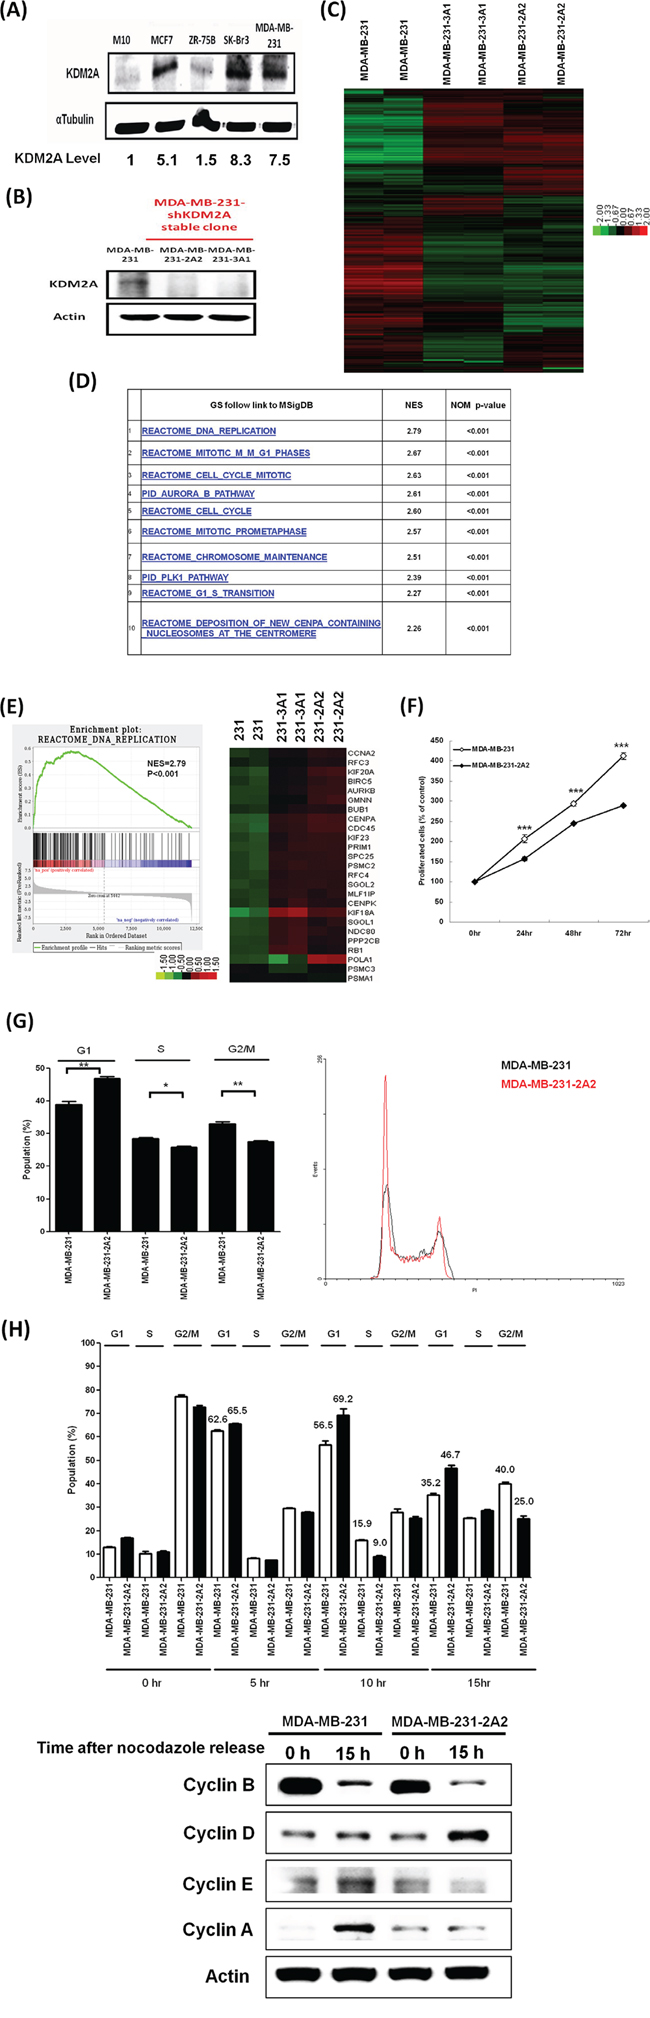 Knockdown of KDM2A delayed cell cycle progression and decreased proliferation of breast cancer cells.